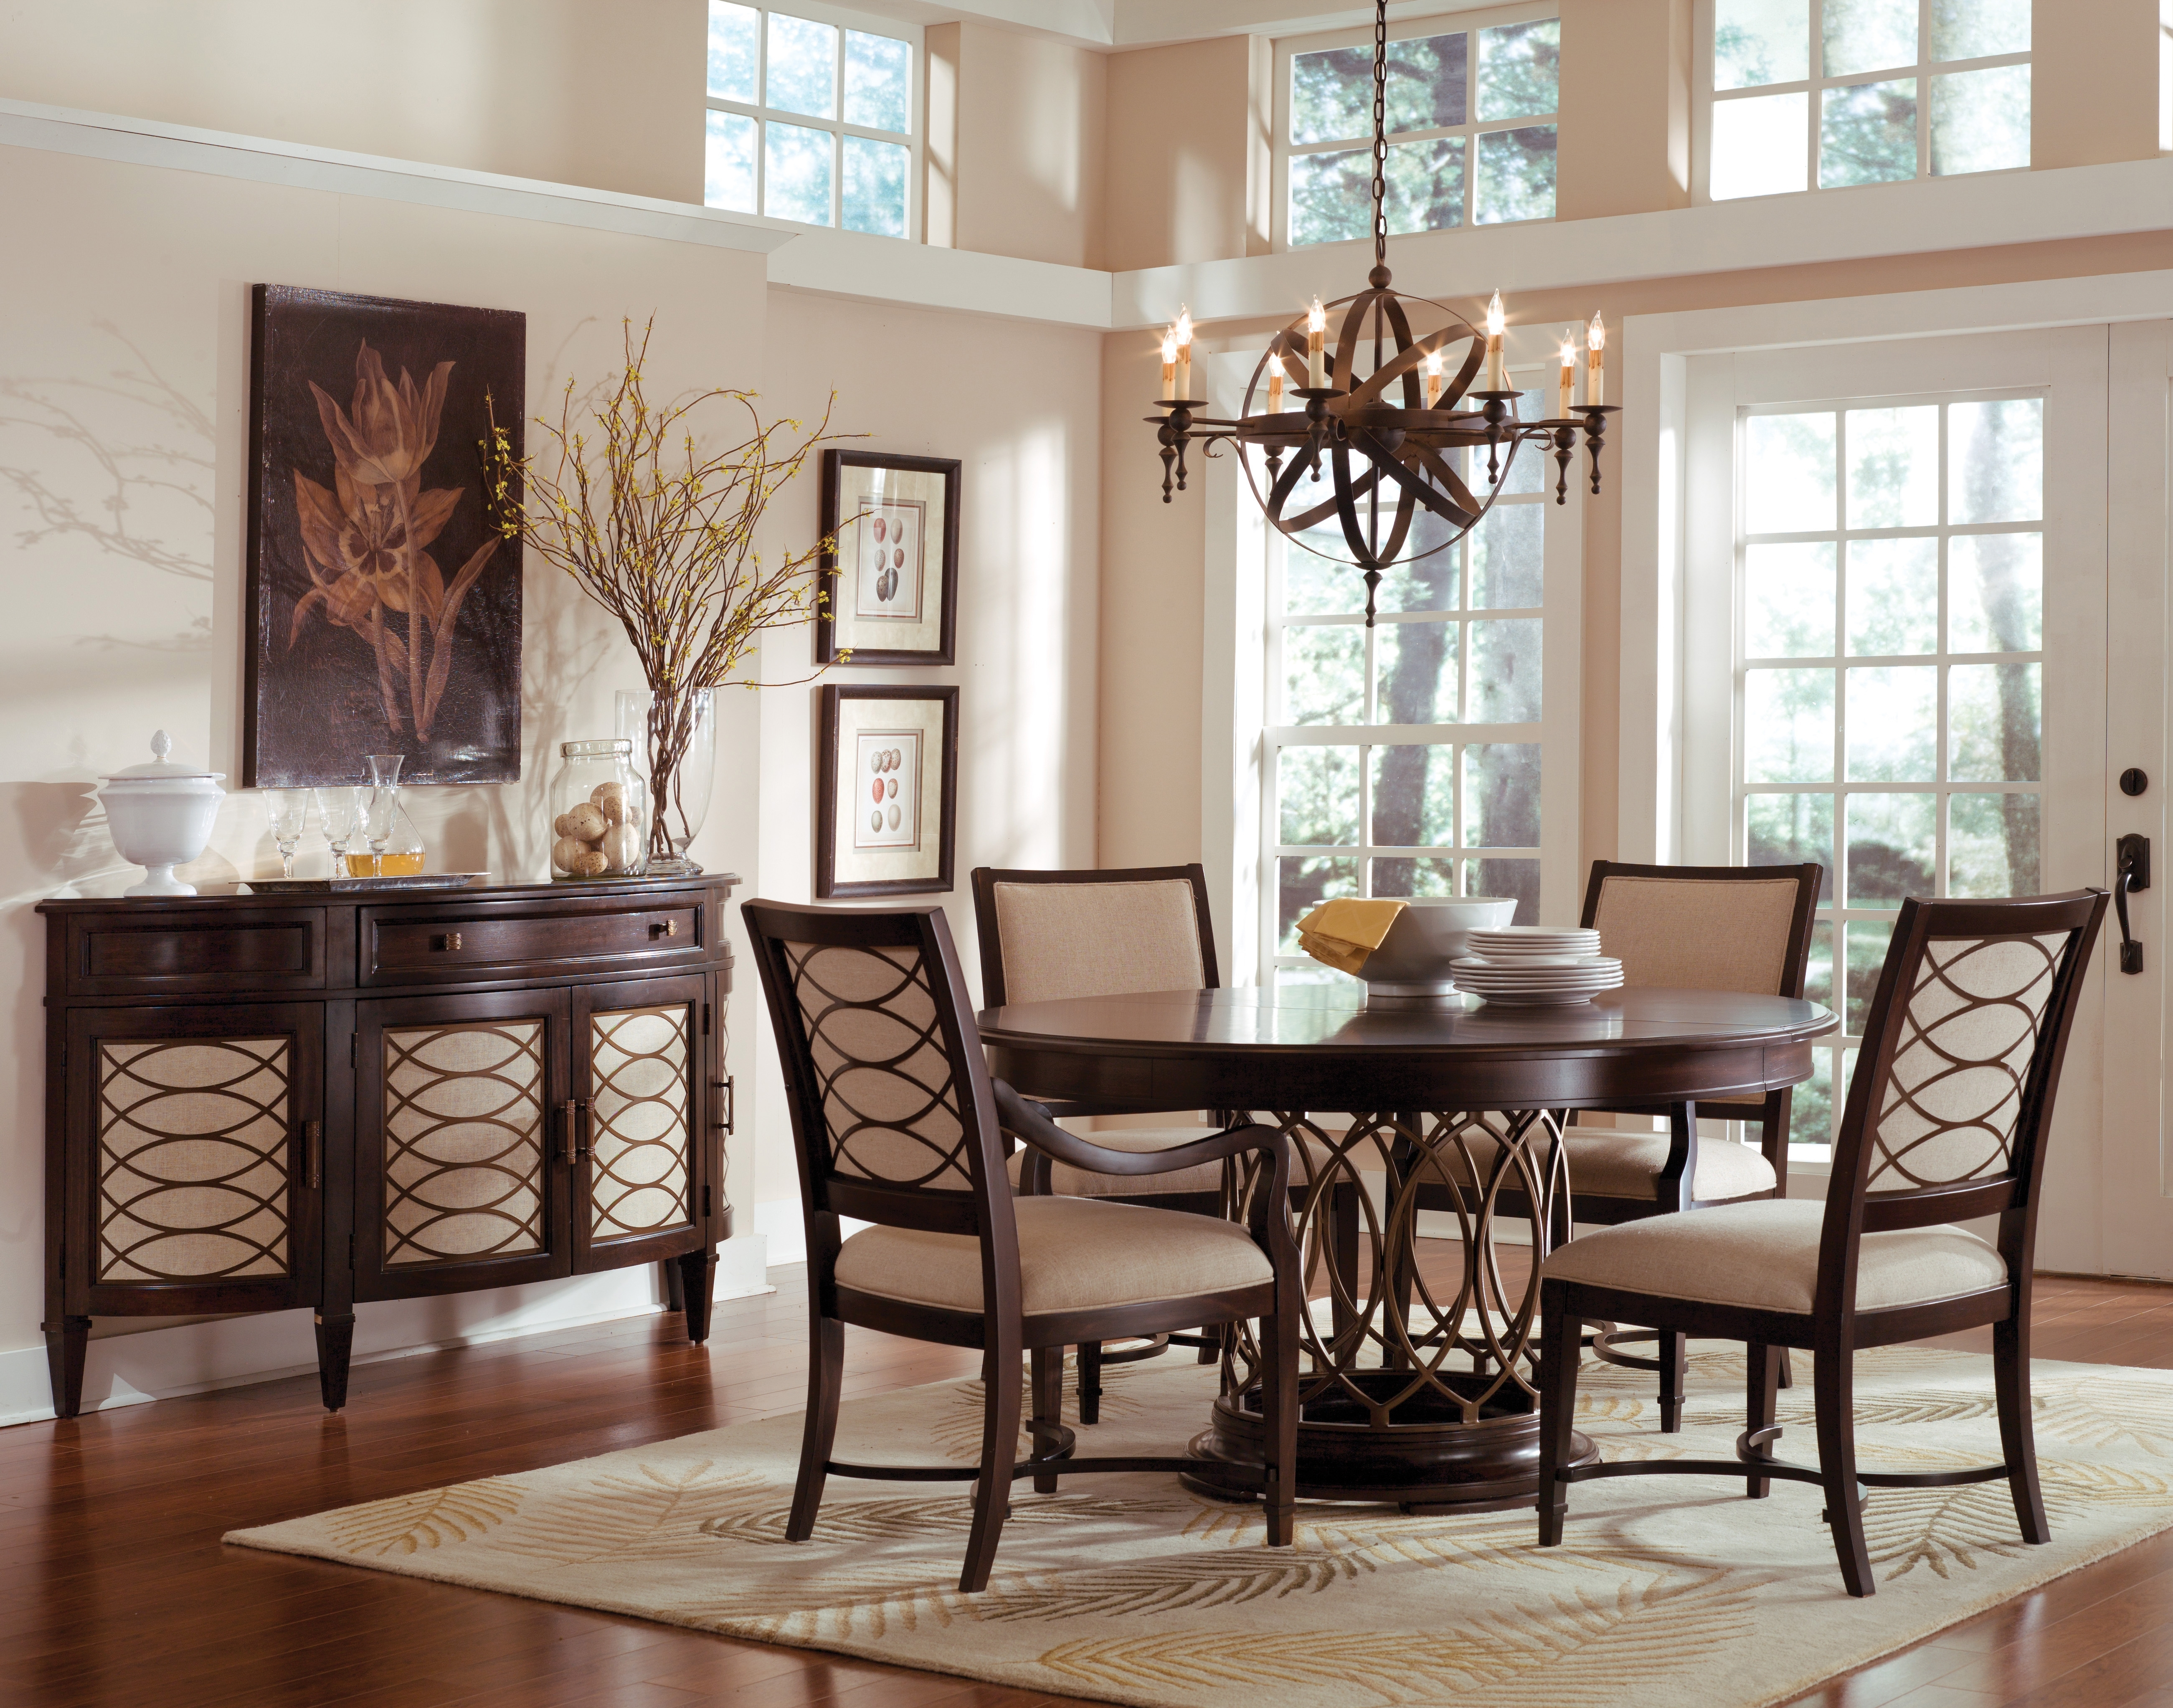 Brilliant Ideas Of Round Dining Room Table With Grady Round Dining With Regard To Most Up To Date Grady Round Dining Tables (Image 4 of 20)